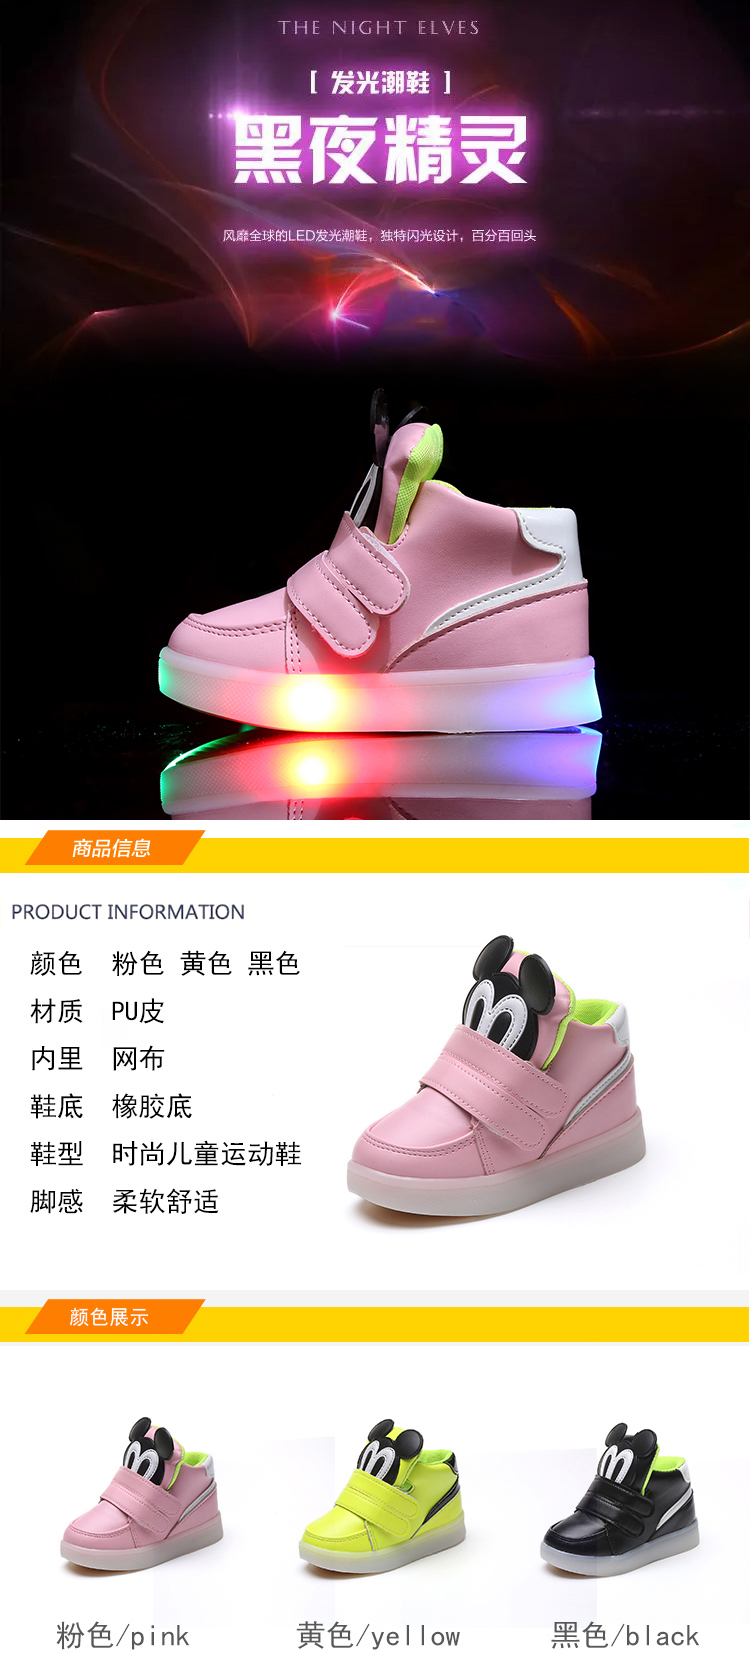 Children Shoes With Light Led Boys Sneakers 2017 New Spring Cartoon 20152016 Hyundai Sonata Curt T Connector Wiring Harness 56247 Lighted Sport Fashion Girls Chaussure Enfant Us299